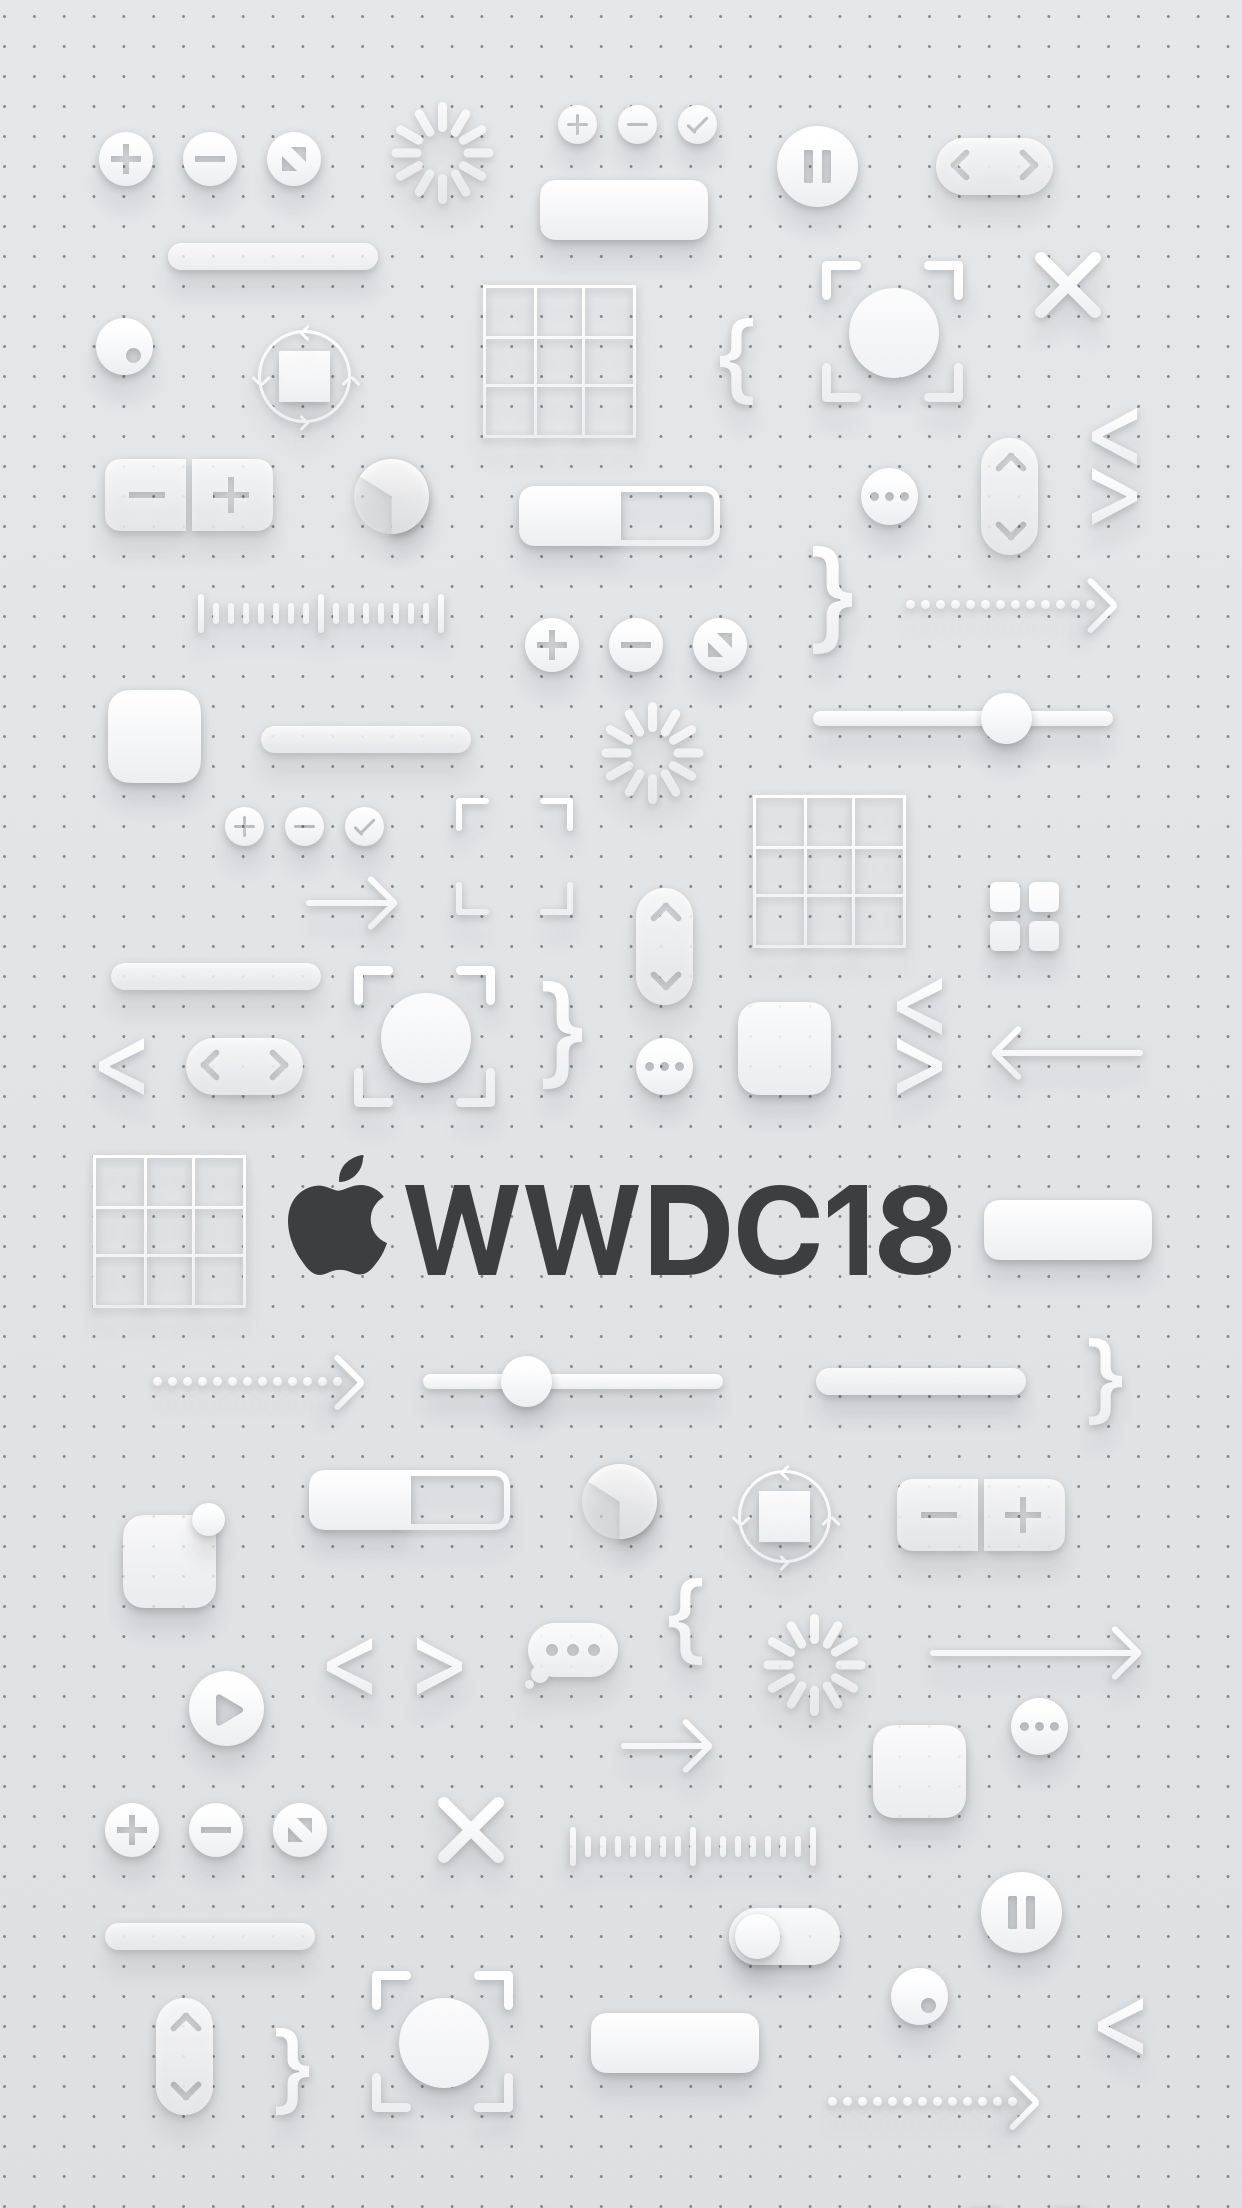 WWDC 2018 wallpaper iPhone 8 Plus dark logo